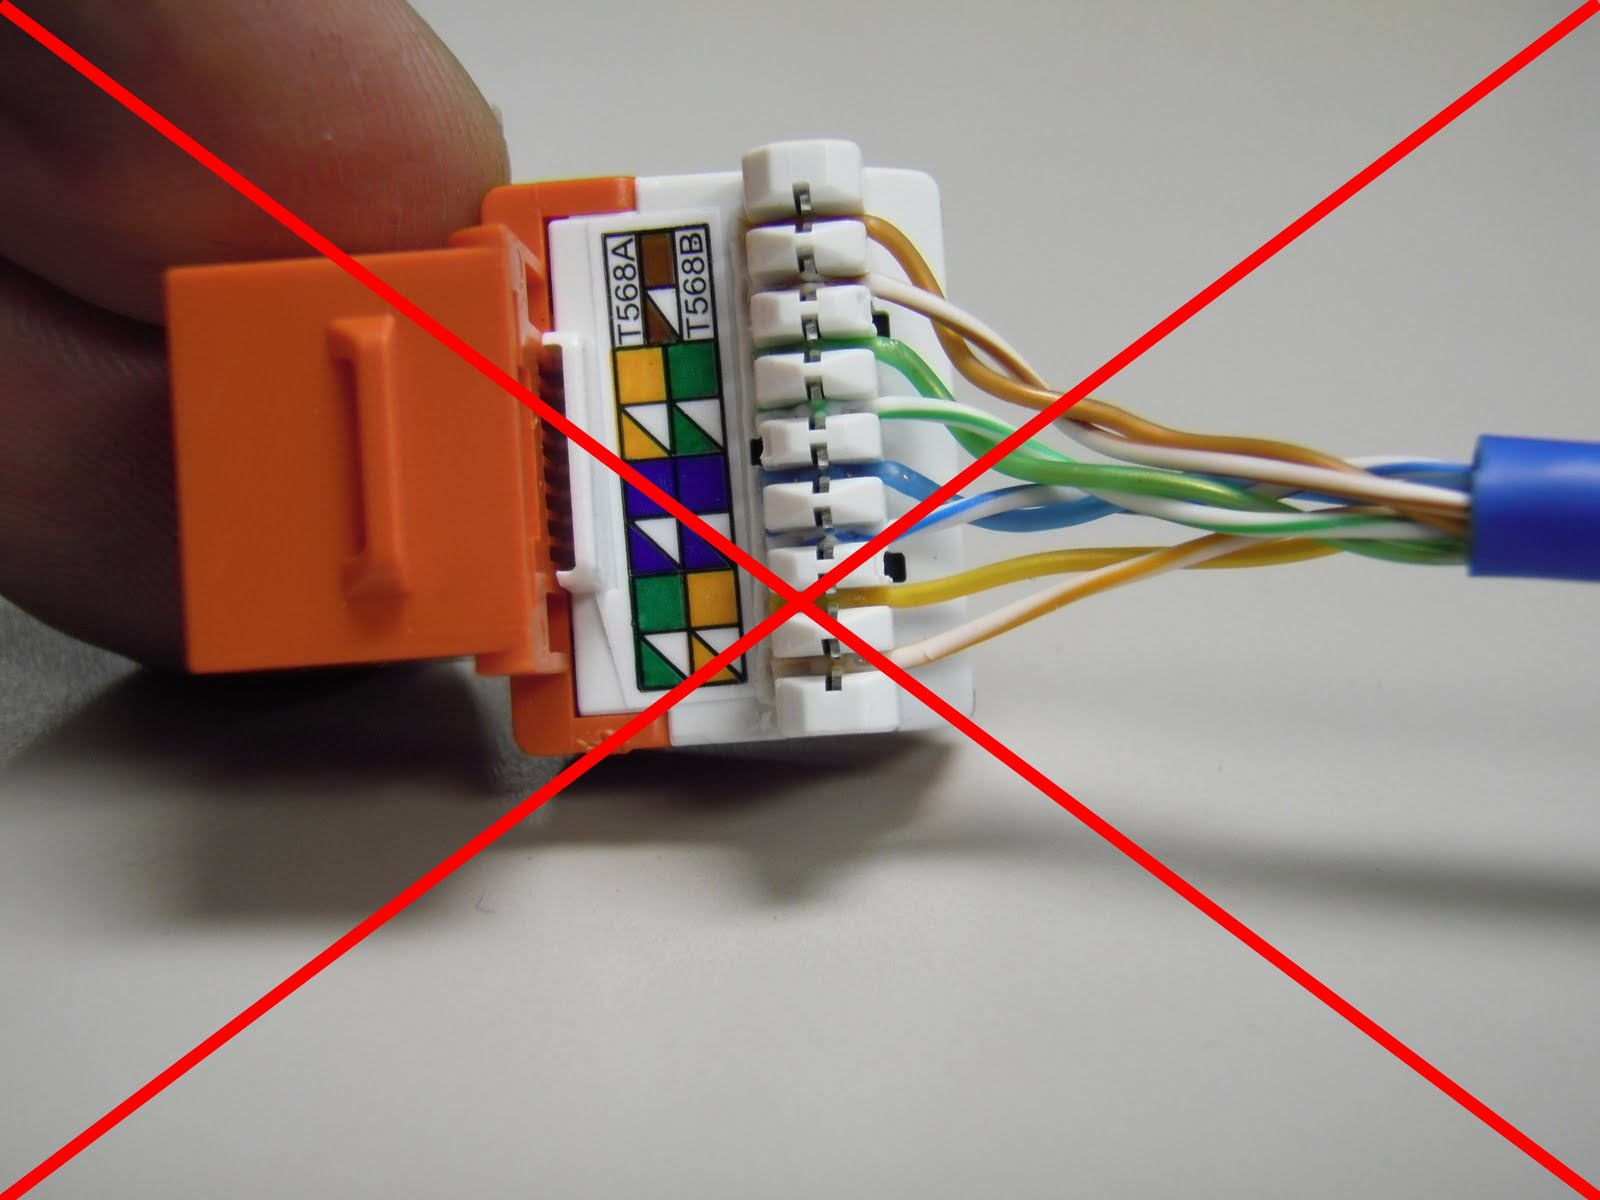 CAT5E+ER+JACK+PUNCHED+WRONG+RED+X the trench how to punch down cat5e cat6 keystone jacks keystone wiring diagram at gsmx.co